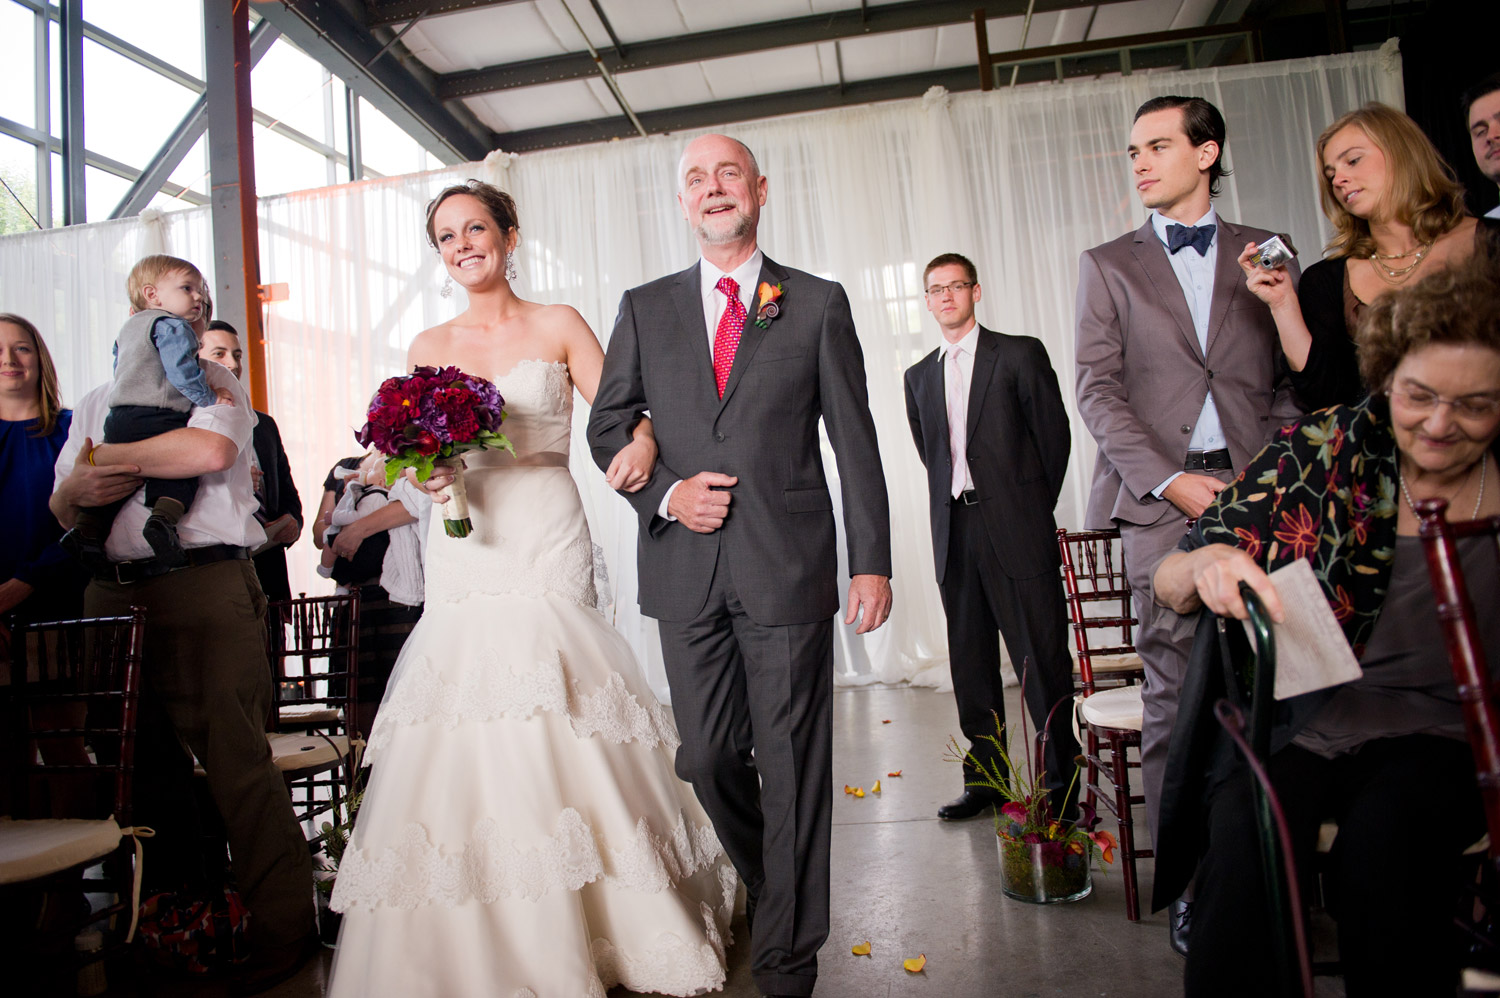 wedding-photography-minneapolis-mark-kegans-441.jpg